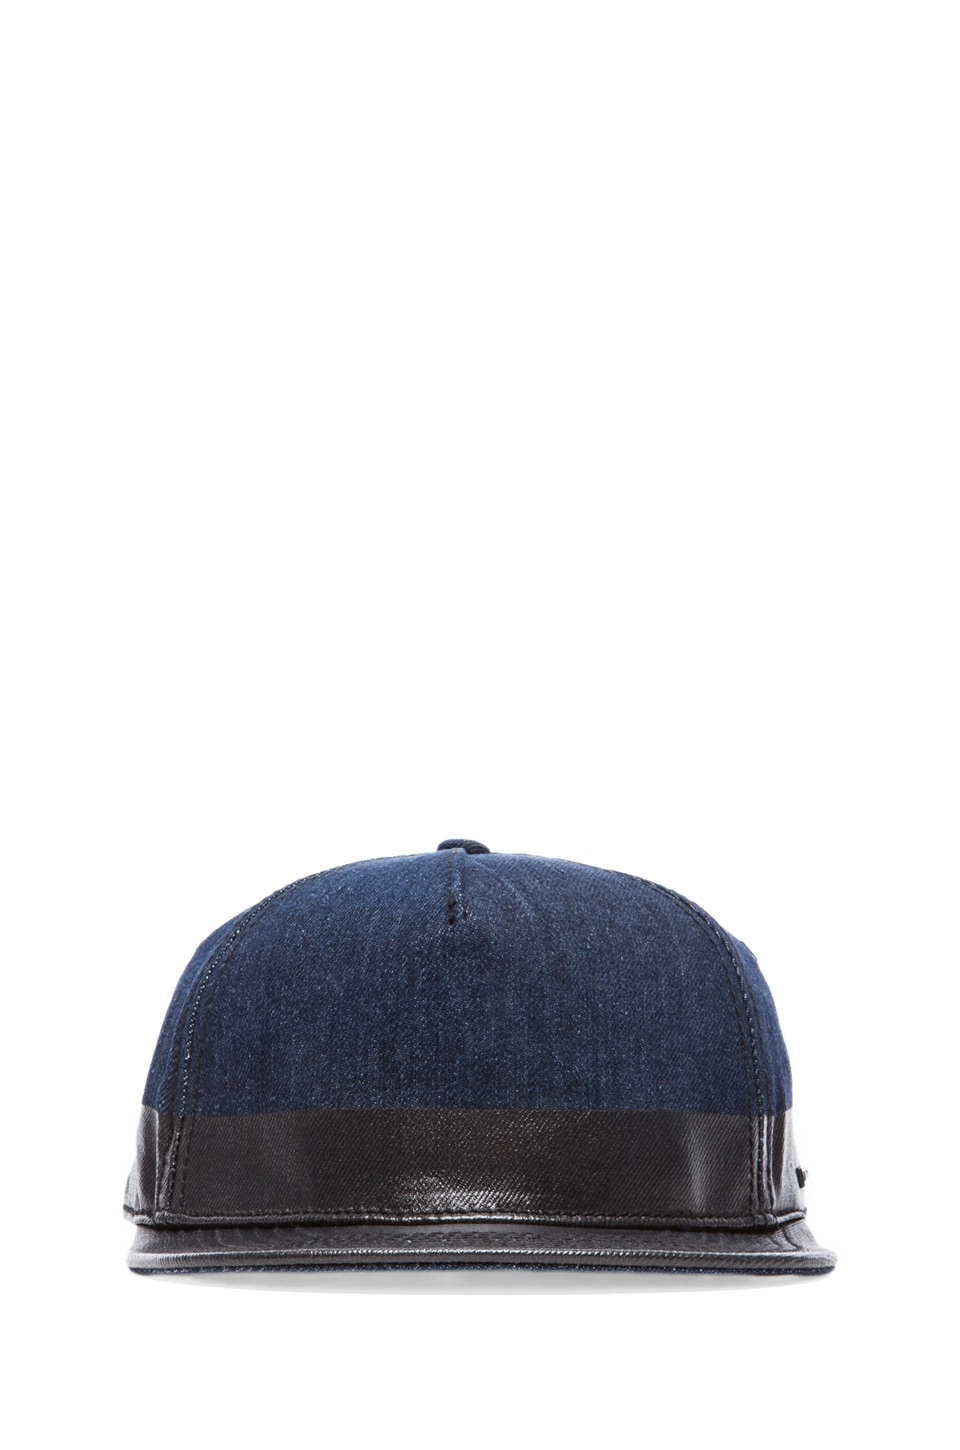 Diesel Chantayer Baseball Hat in Denim/Oil